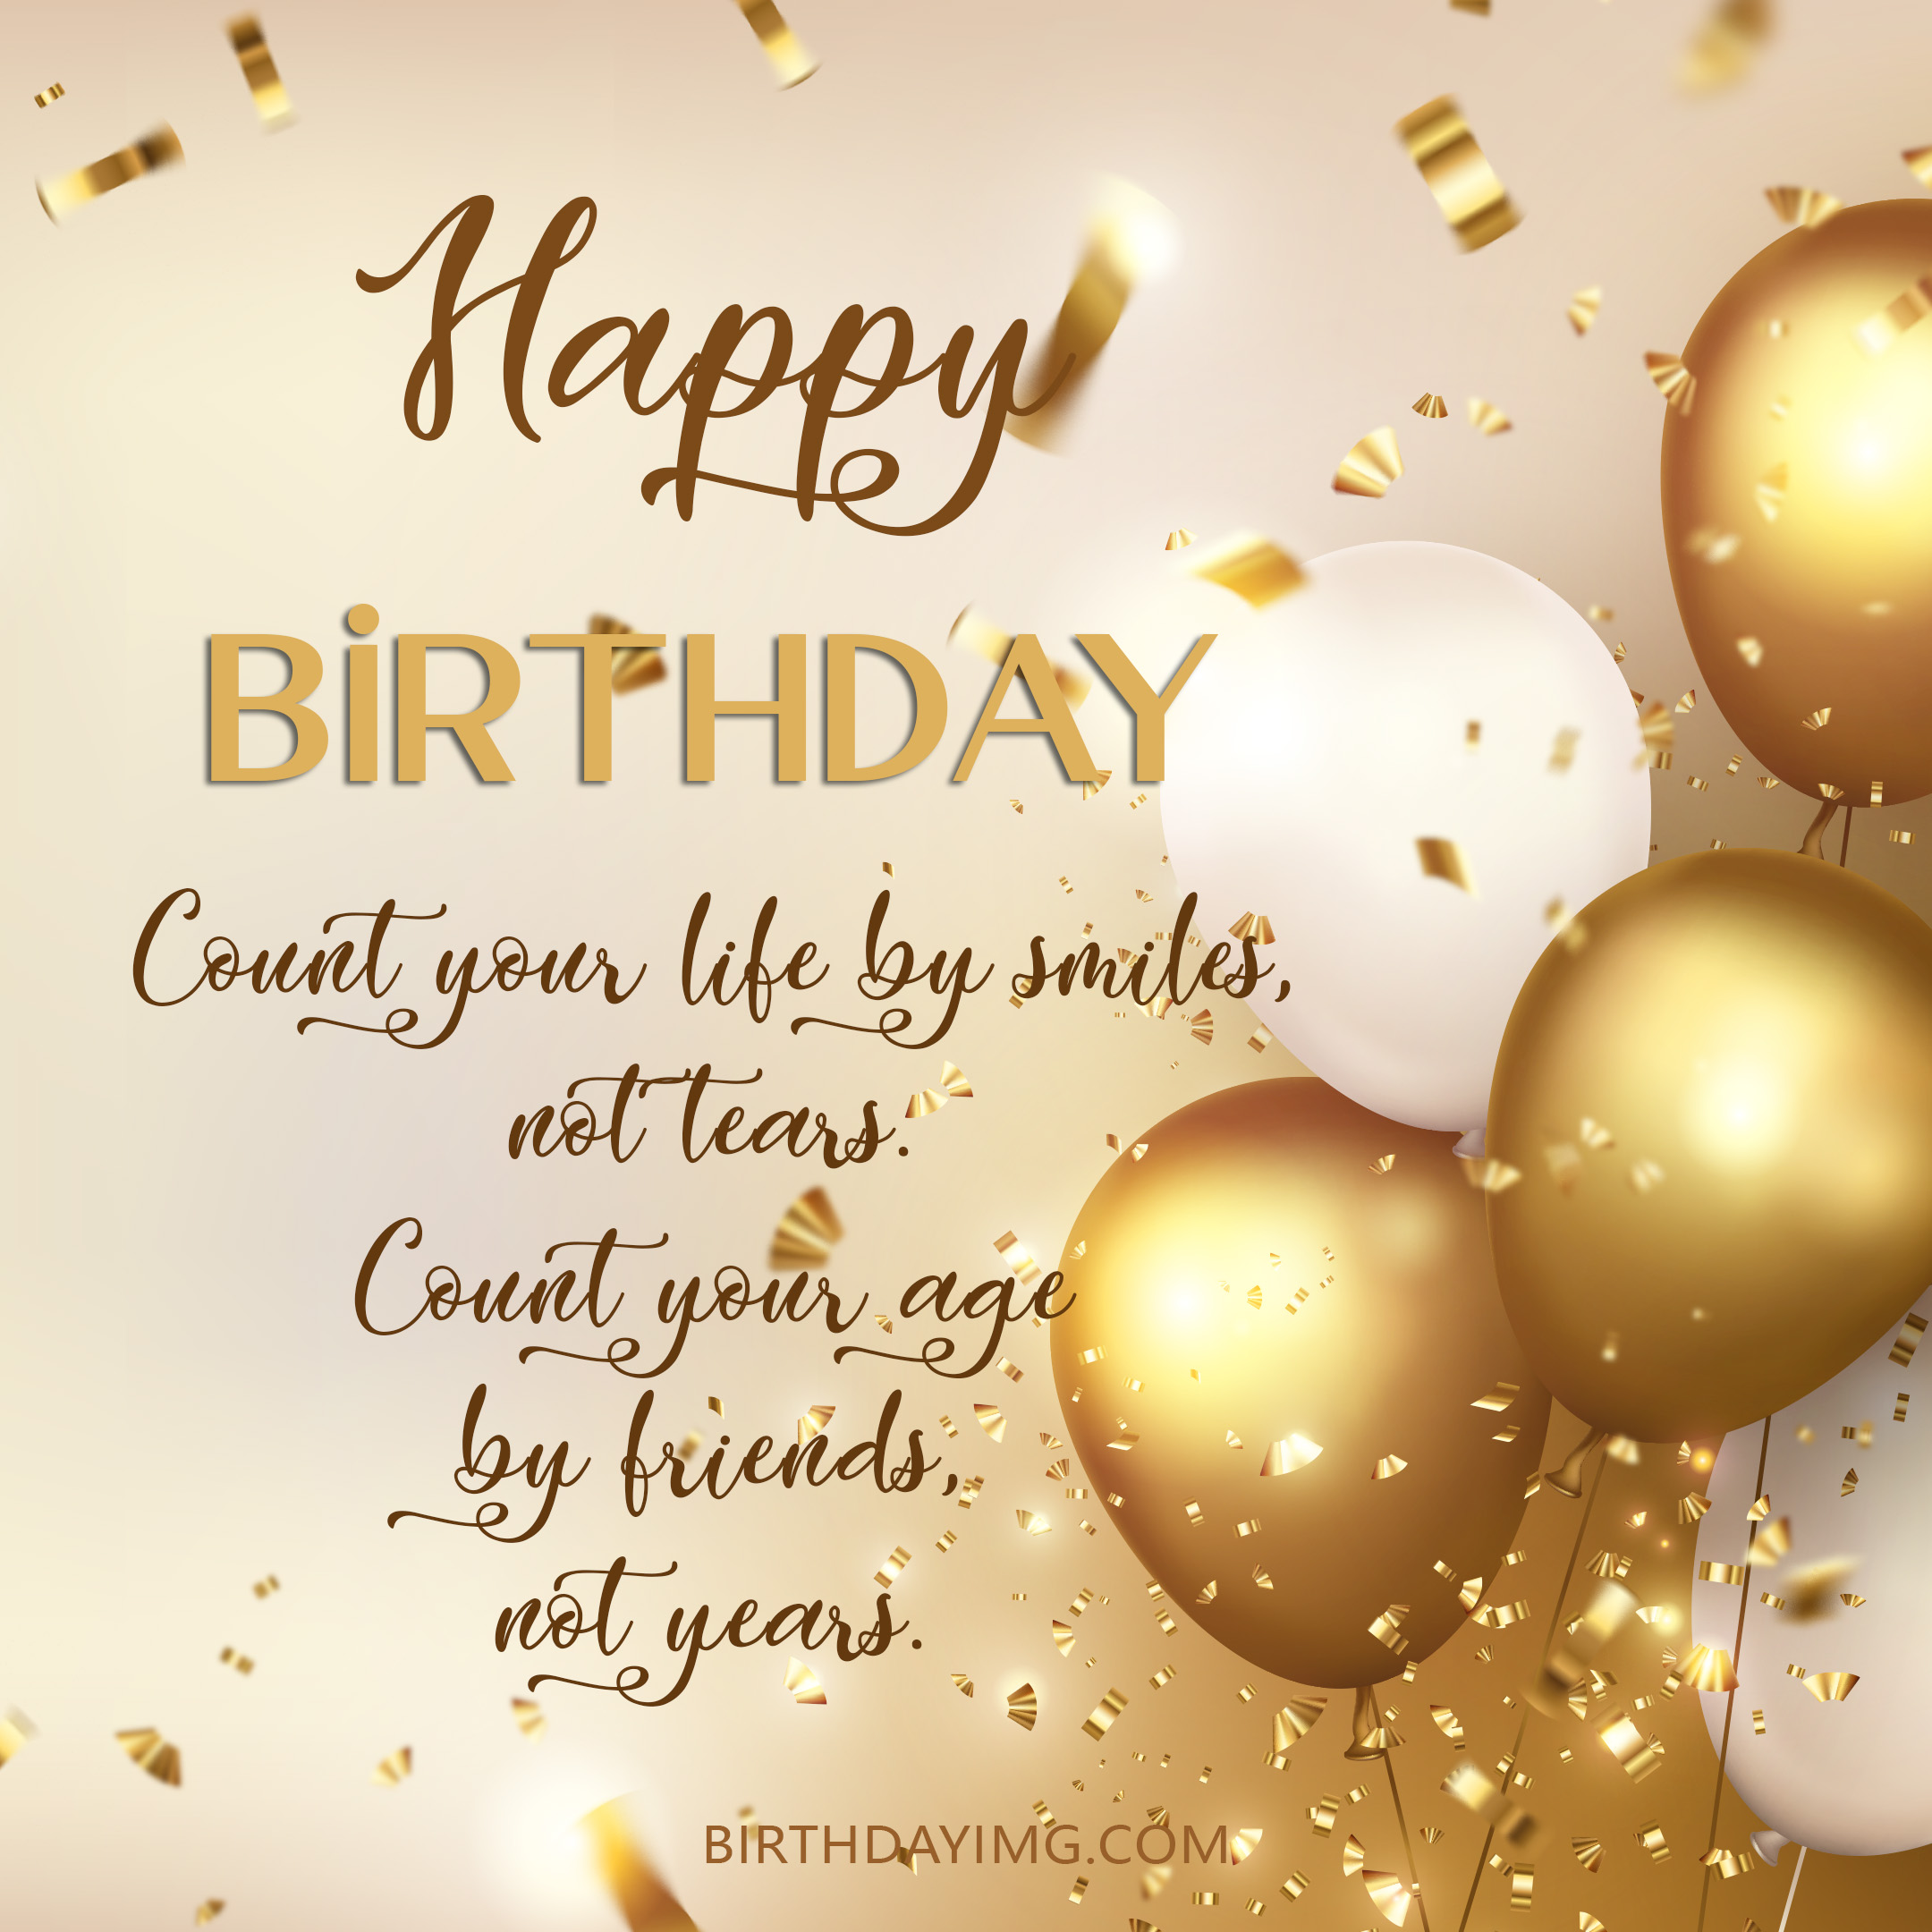 Free Happy Birthday Image With Golden and White Balloons - birthdayimg.com